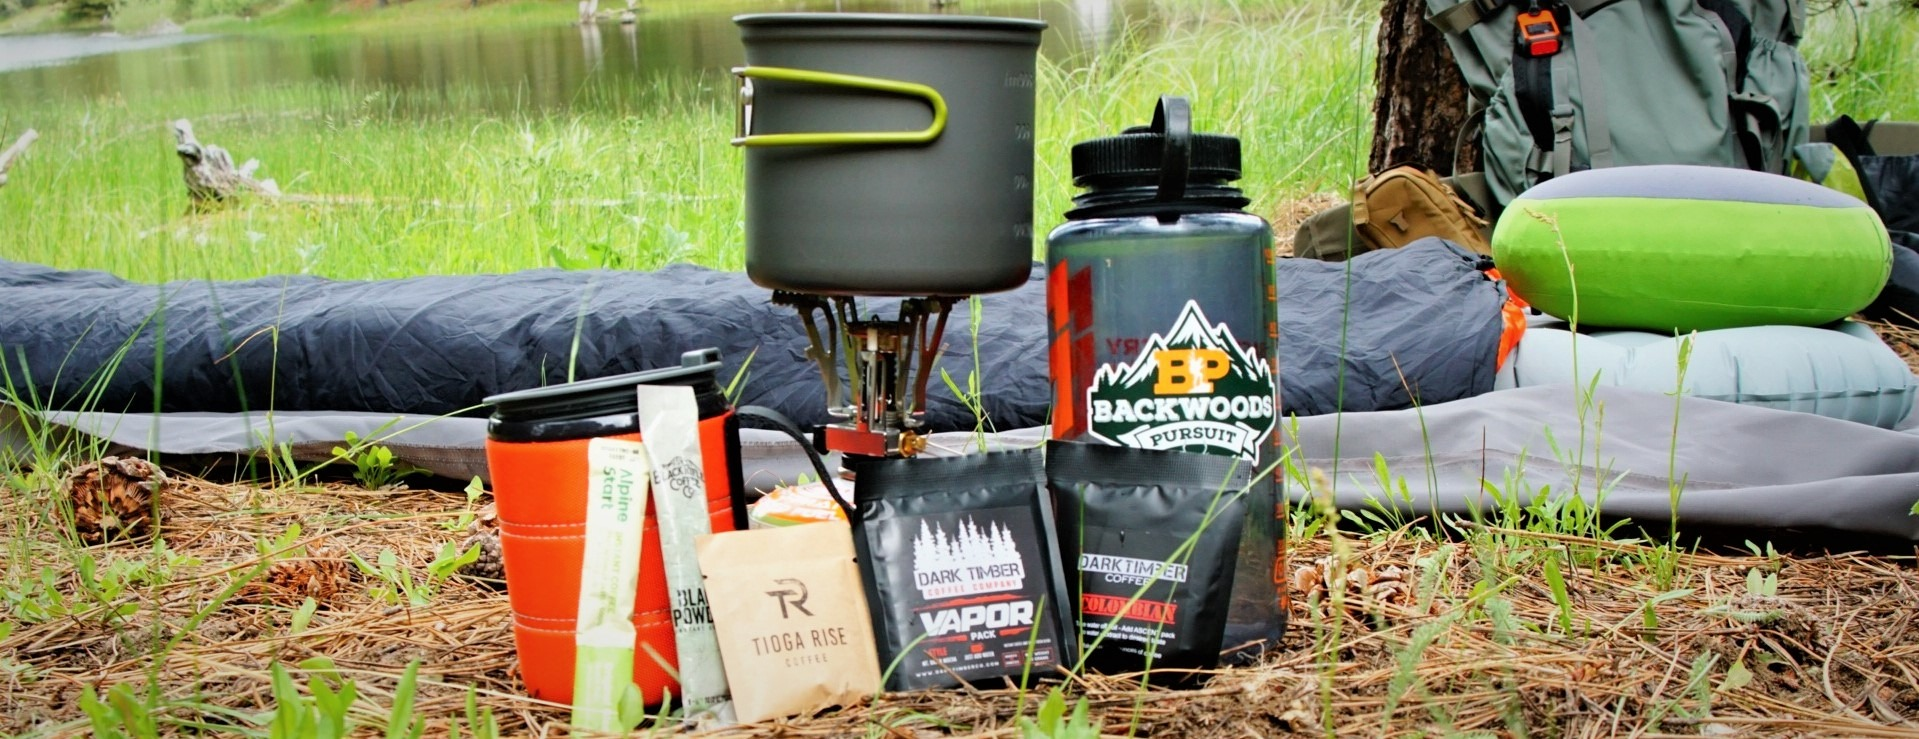 Best backpacking coffee